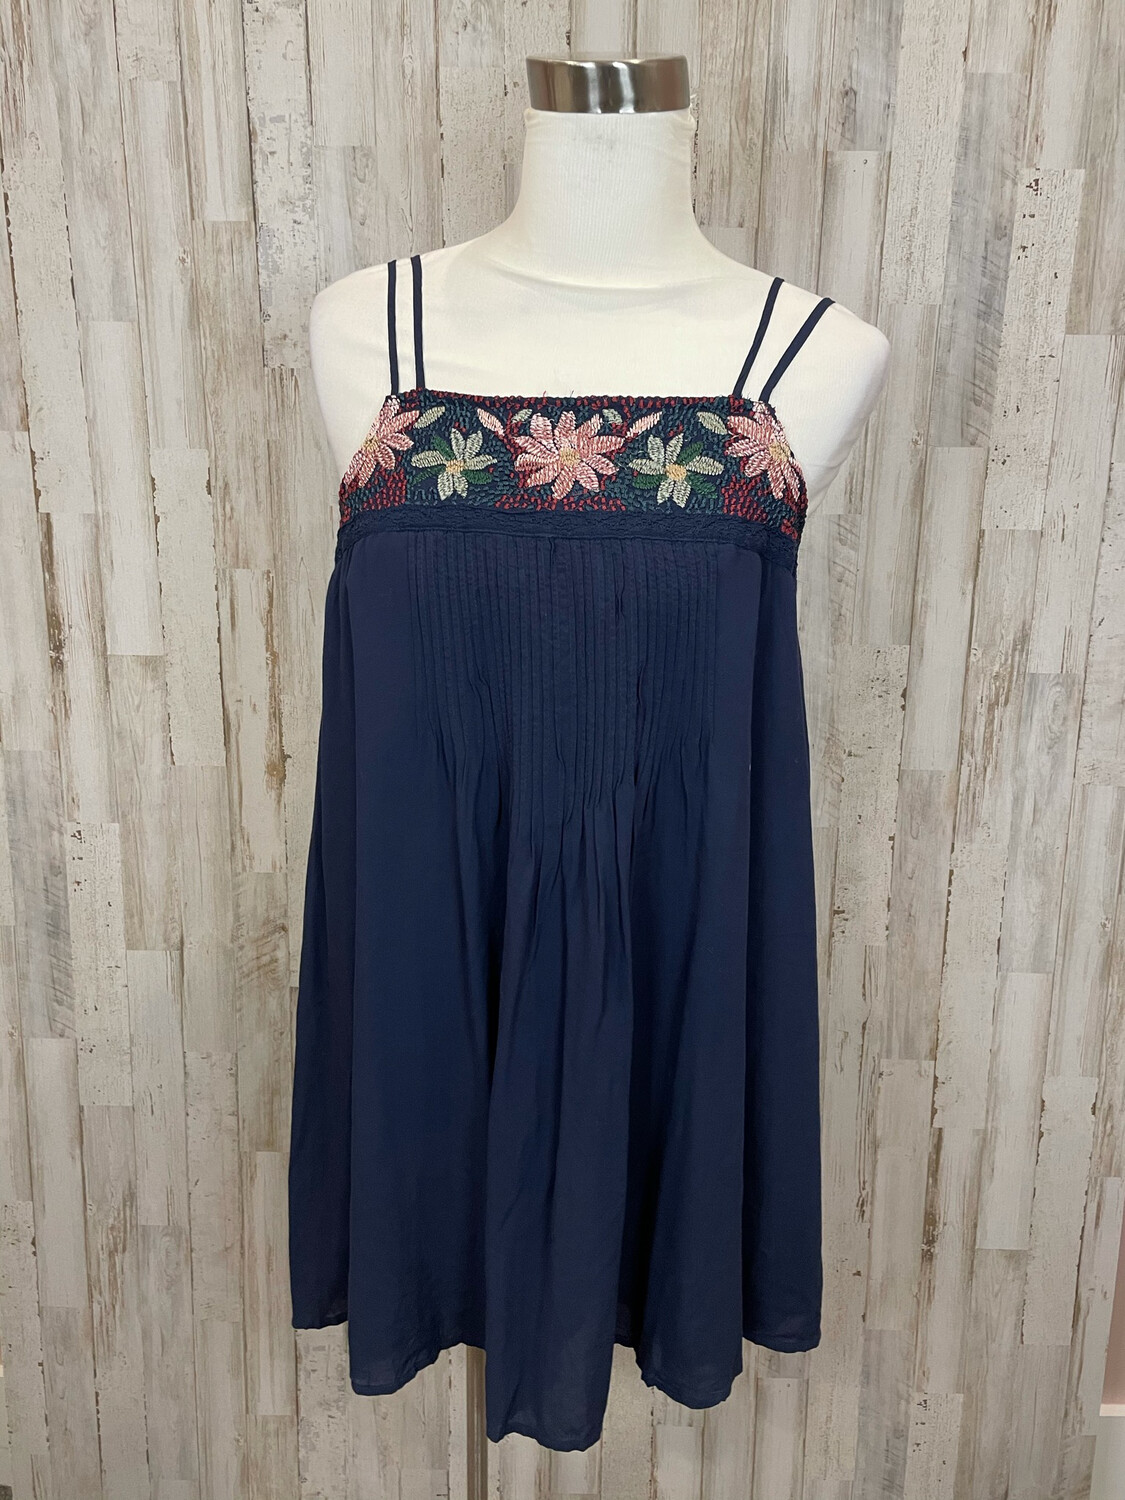 American Eagle Navy Dress w/ Floral Embroidery - S